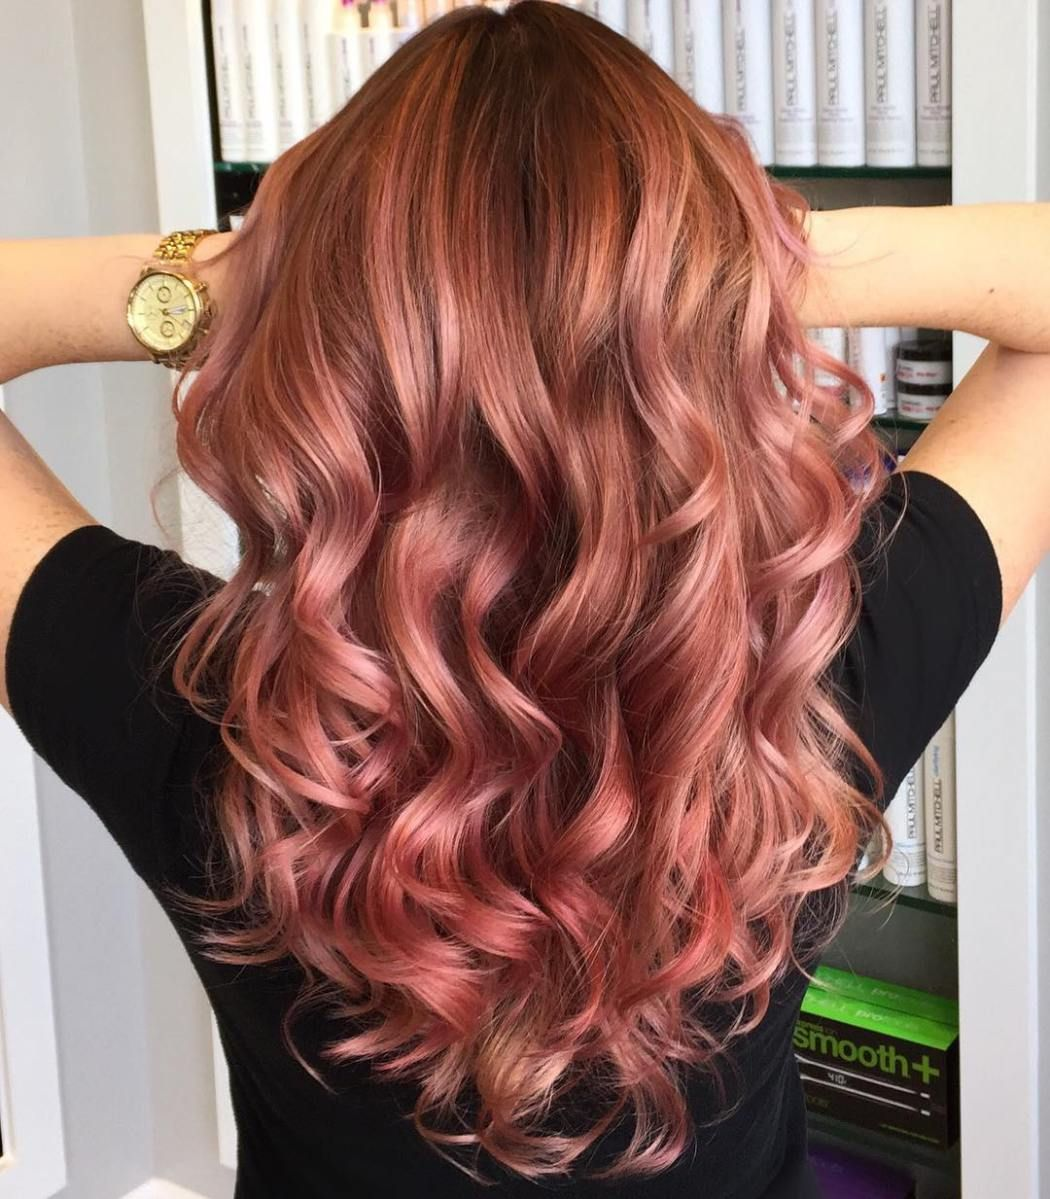 20 Rose Gold Hair Color Ideas + Tips How to Dye | Rose ...